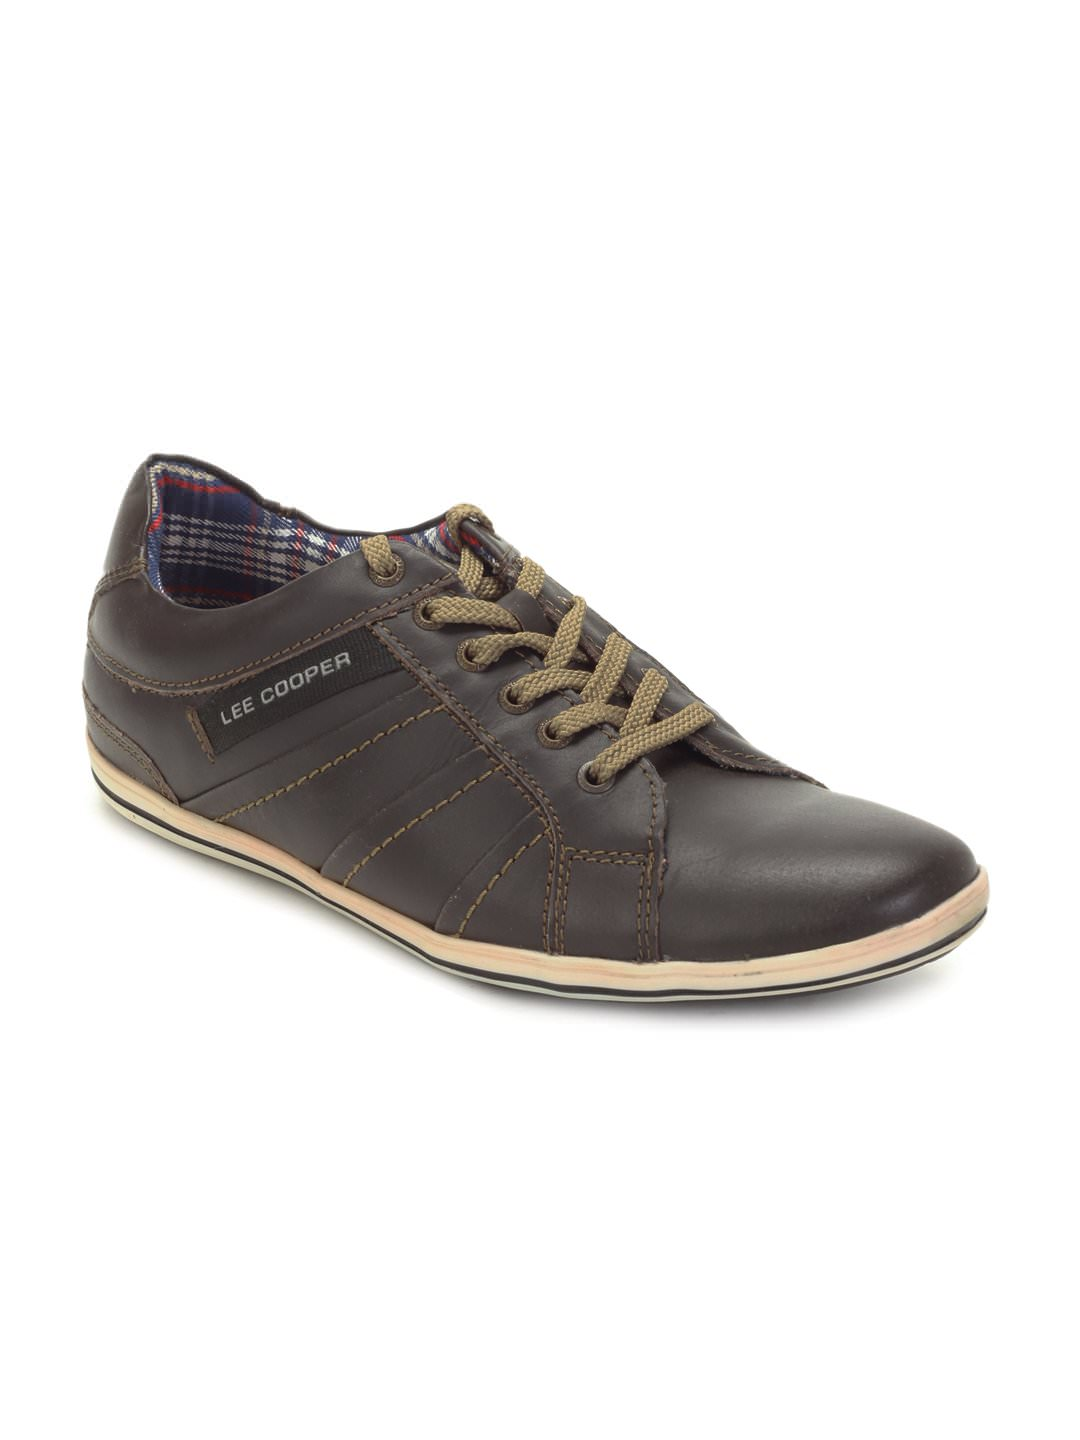 Lee Cooper Casual Shoes For Mens